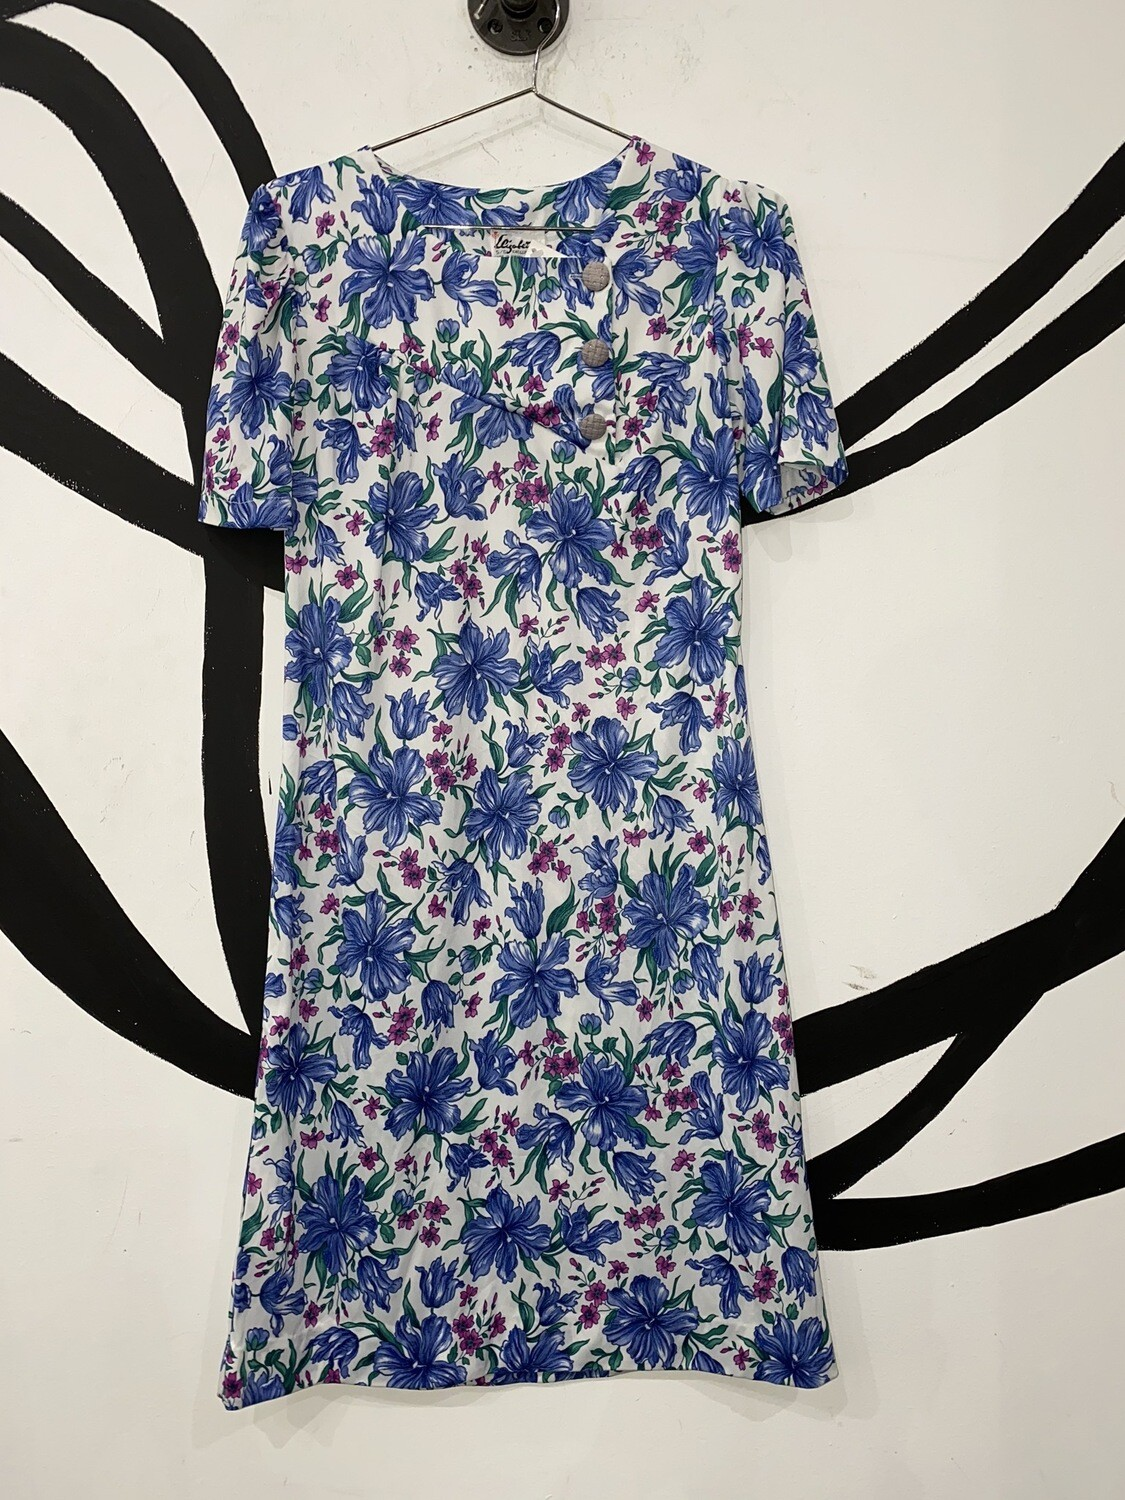 Women's Floral Print Dress W/ Button Detail-Size 5-6